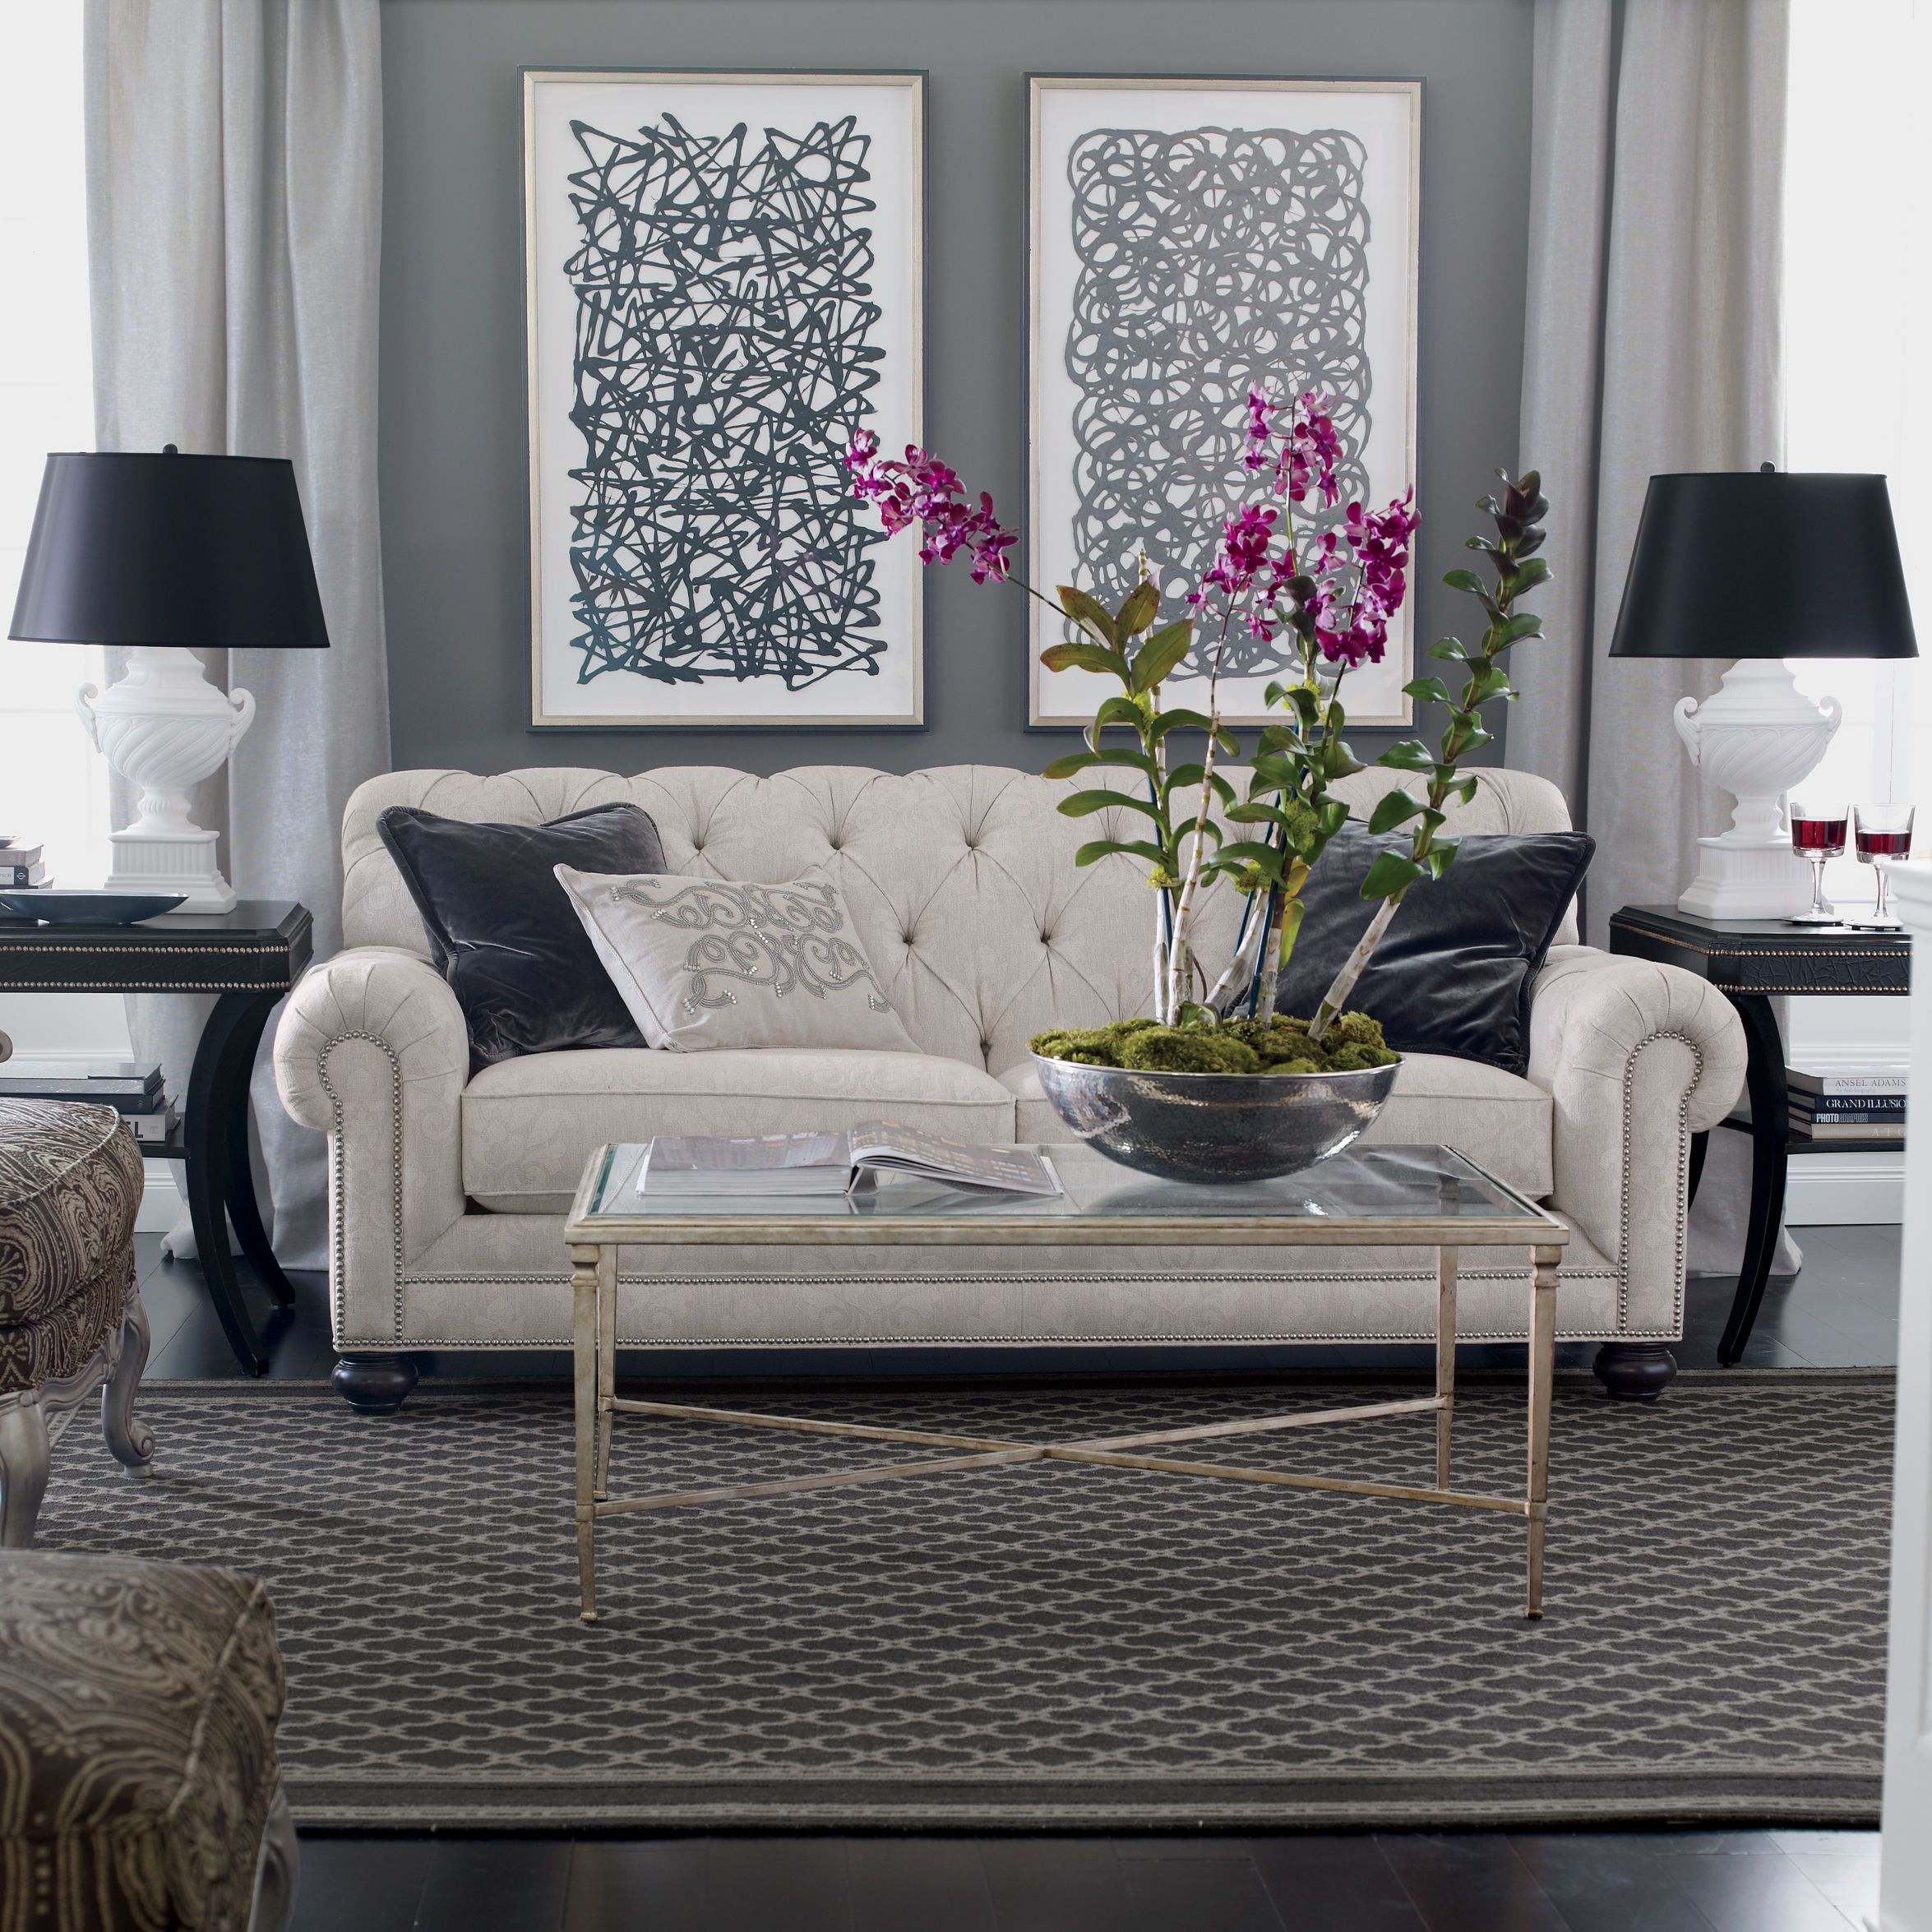 chadwick sofa ethan allen reviews shops chelsea harbour home decor photos gallery for the living room rh pinterest com